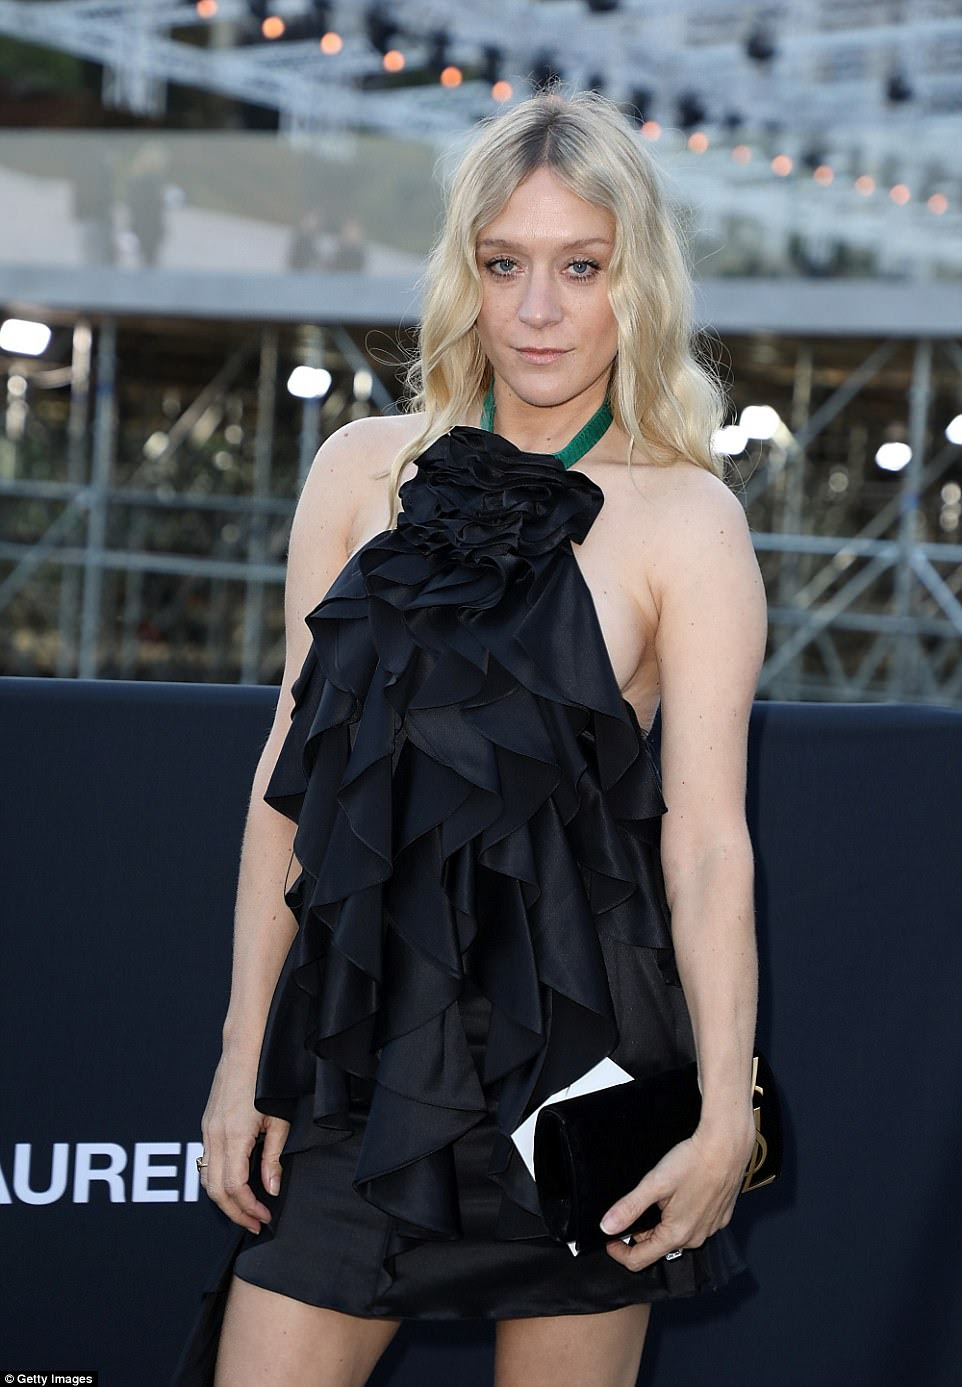 Blonde beauty:Fashionista Chloë Sevigny opted for a funky look complete with knee-high boots and a halterneck dress - in what was one of the sexiest looks of the show